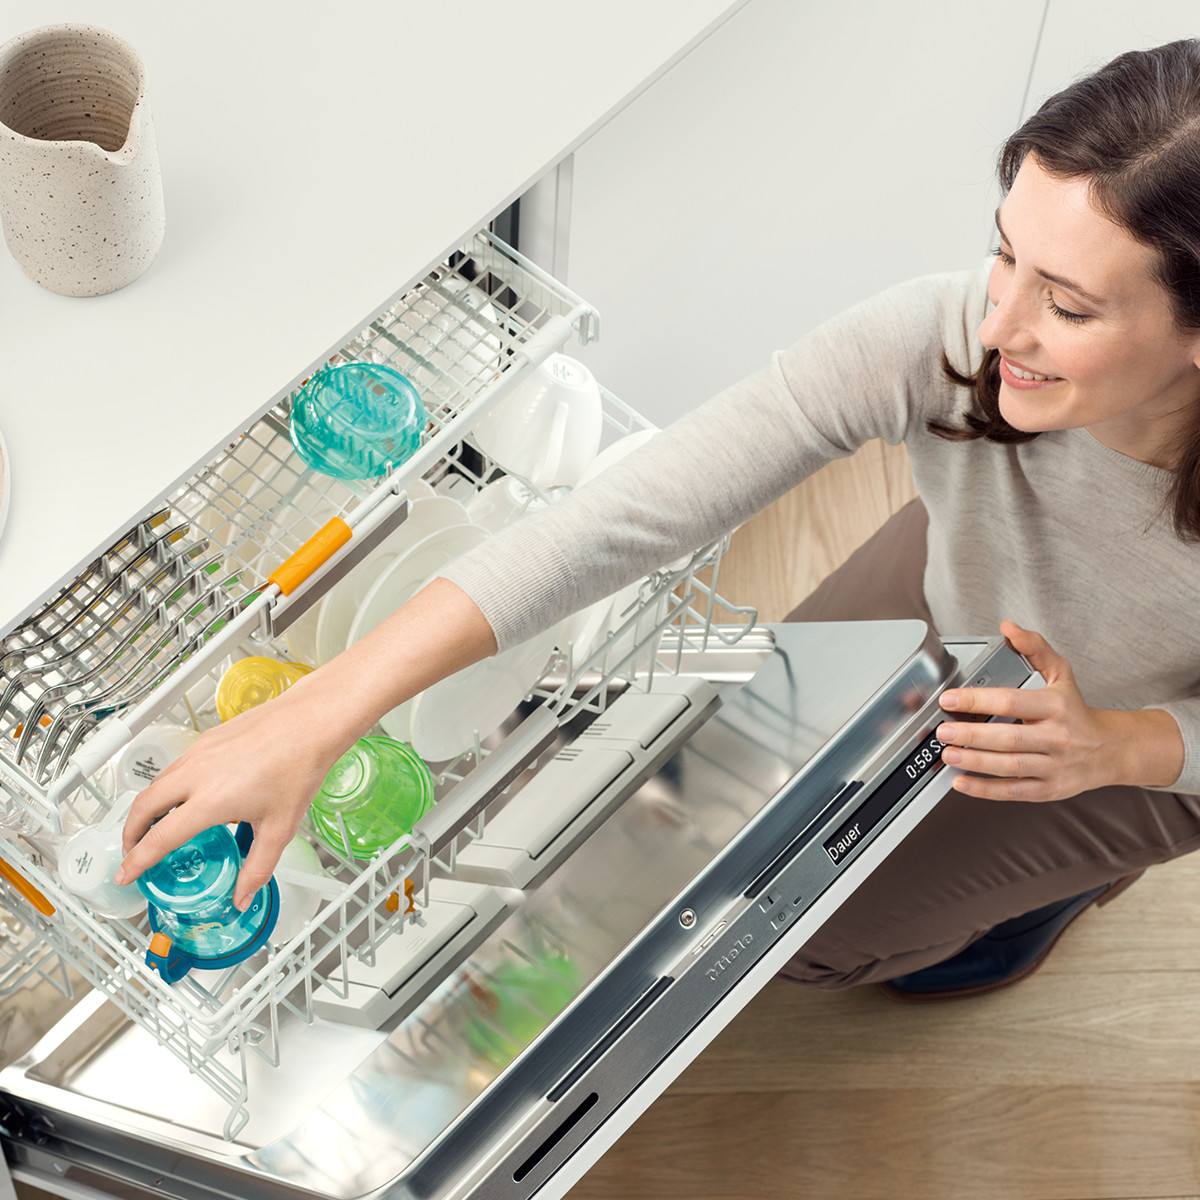 Miele Dishwashers Step ahead of the pack